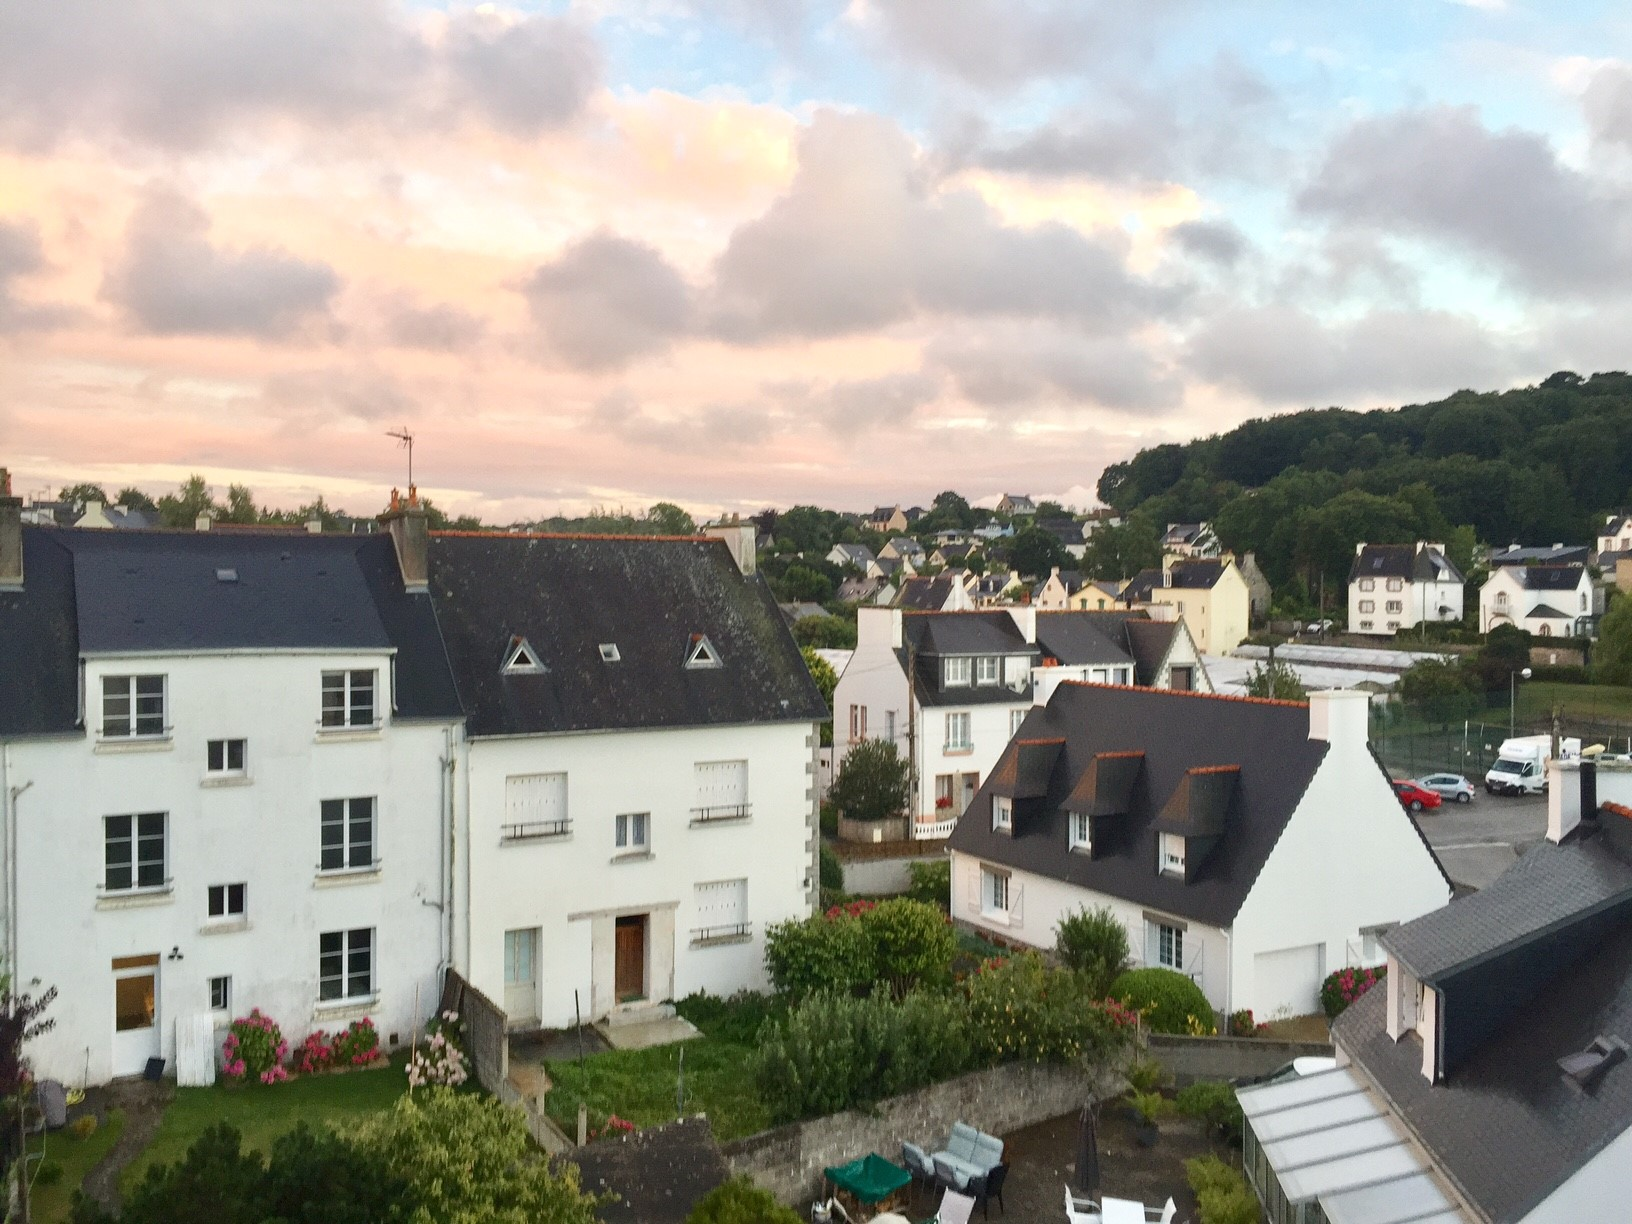 The view from our room over the surrounding town was very pretty.